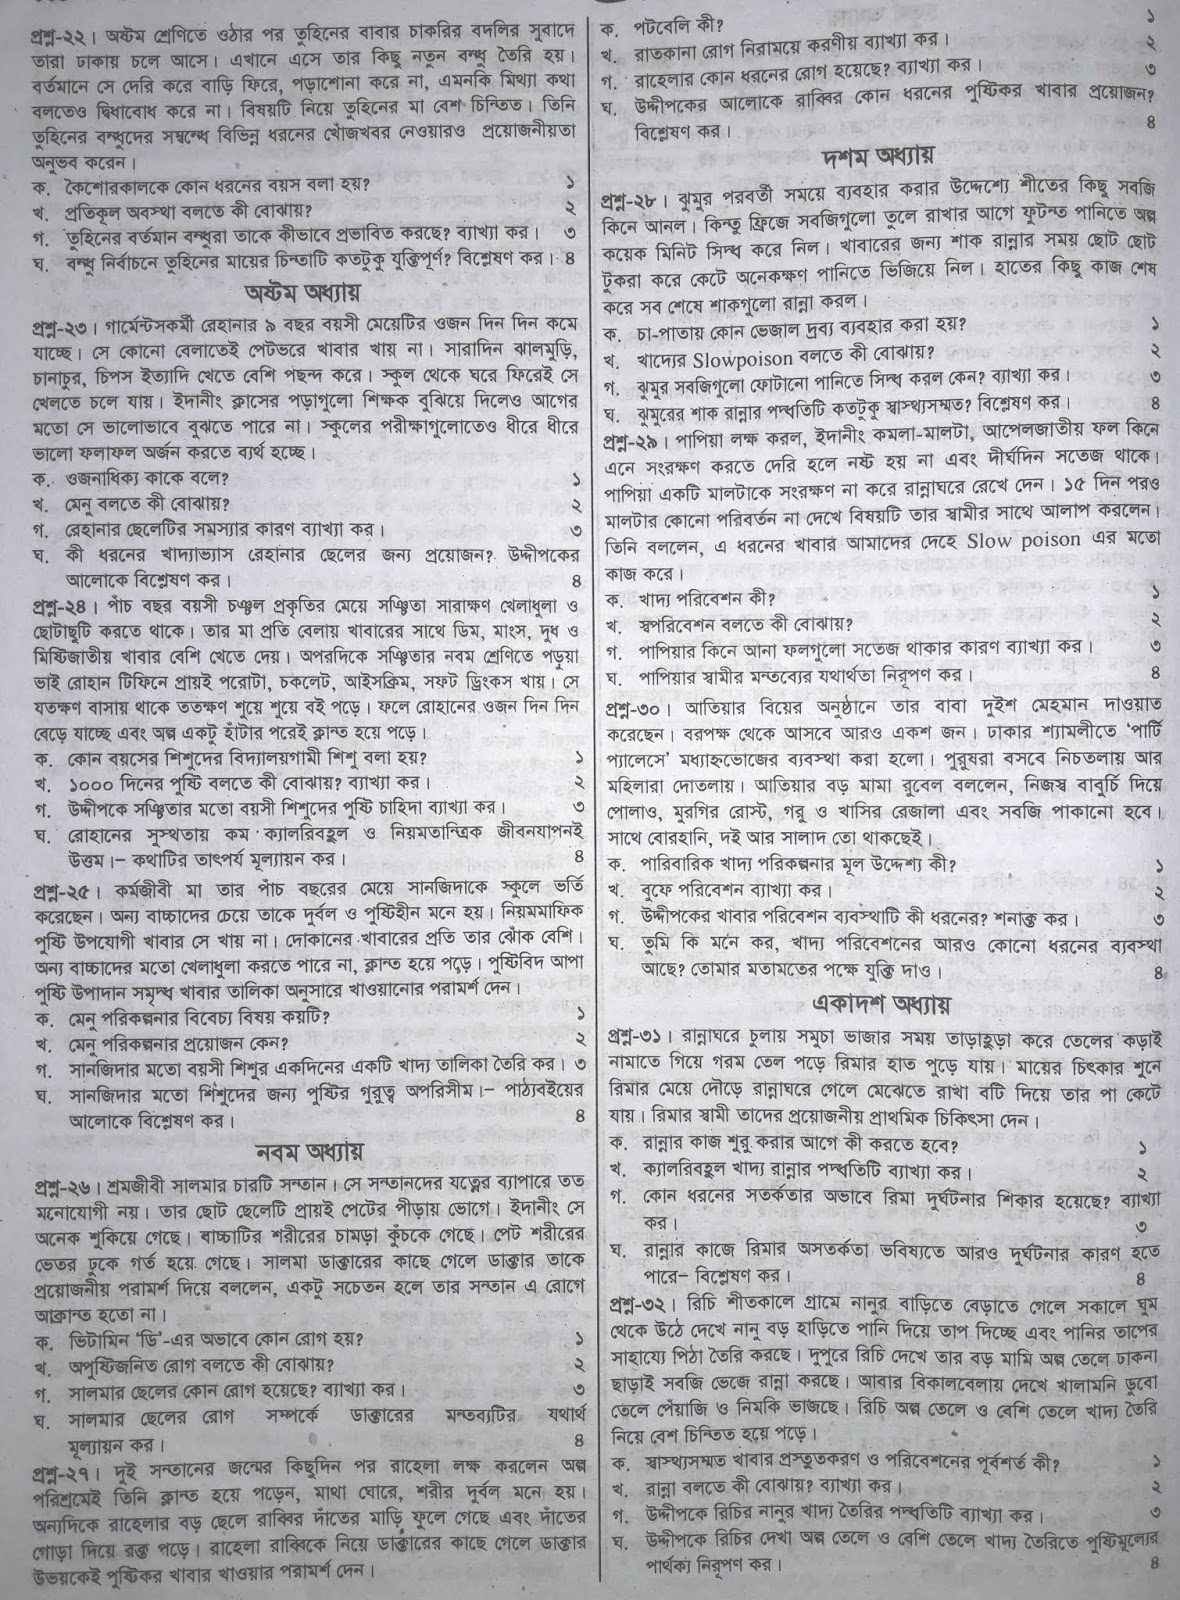 jsc Home Science suggestion, exam question paper, model question, mcq question, question pattern, preparation for dhaka board, all boards